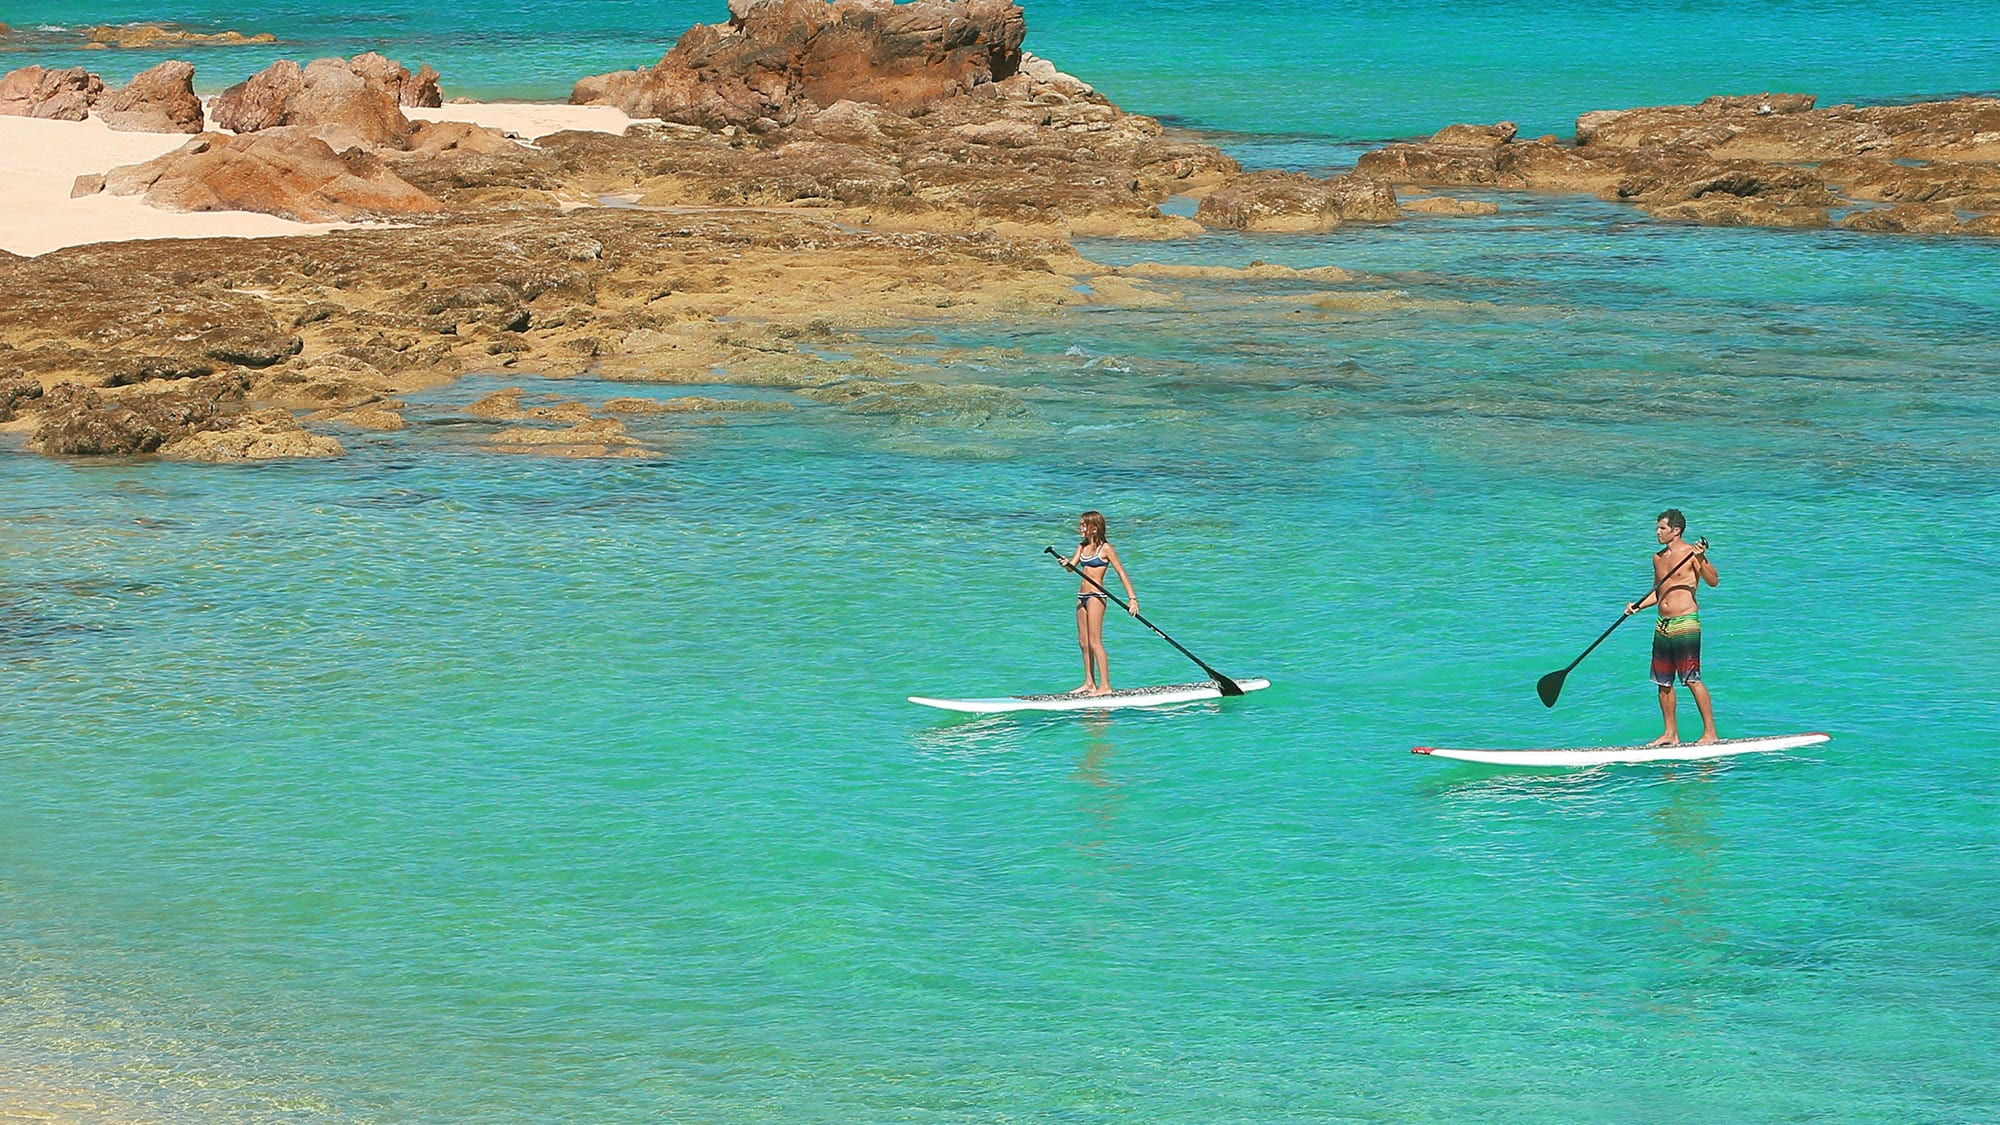 paddleboarding in ocean